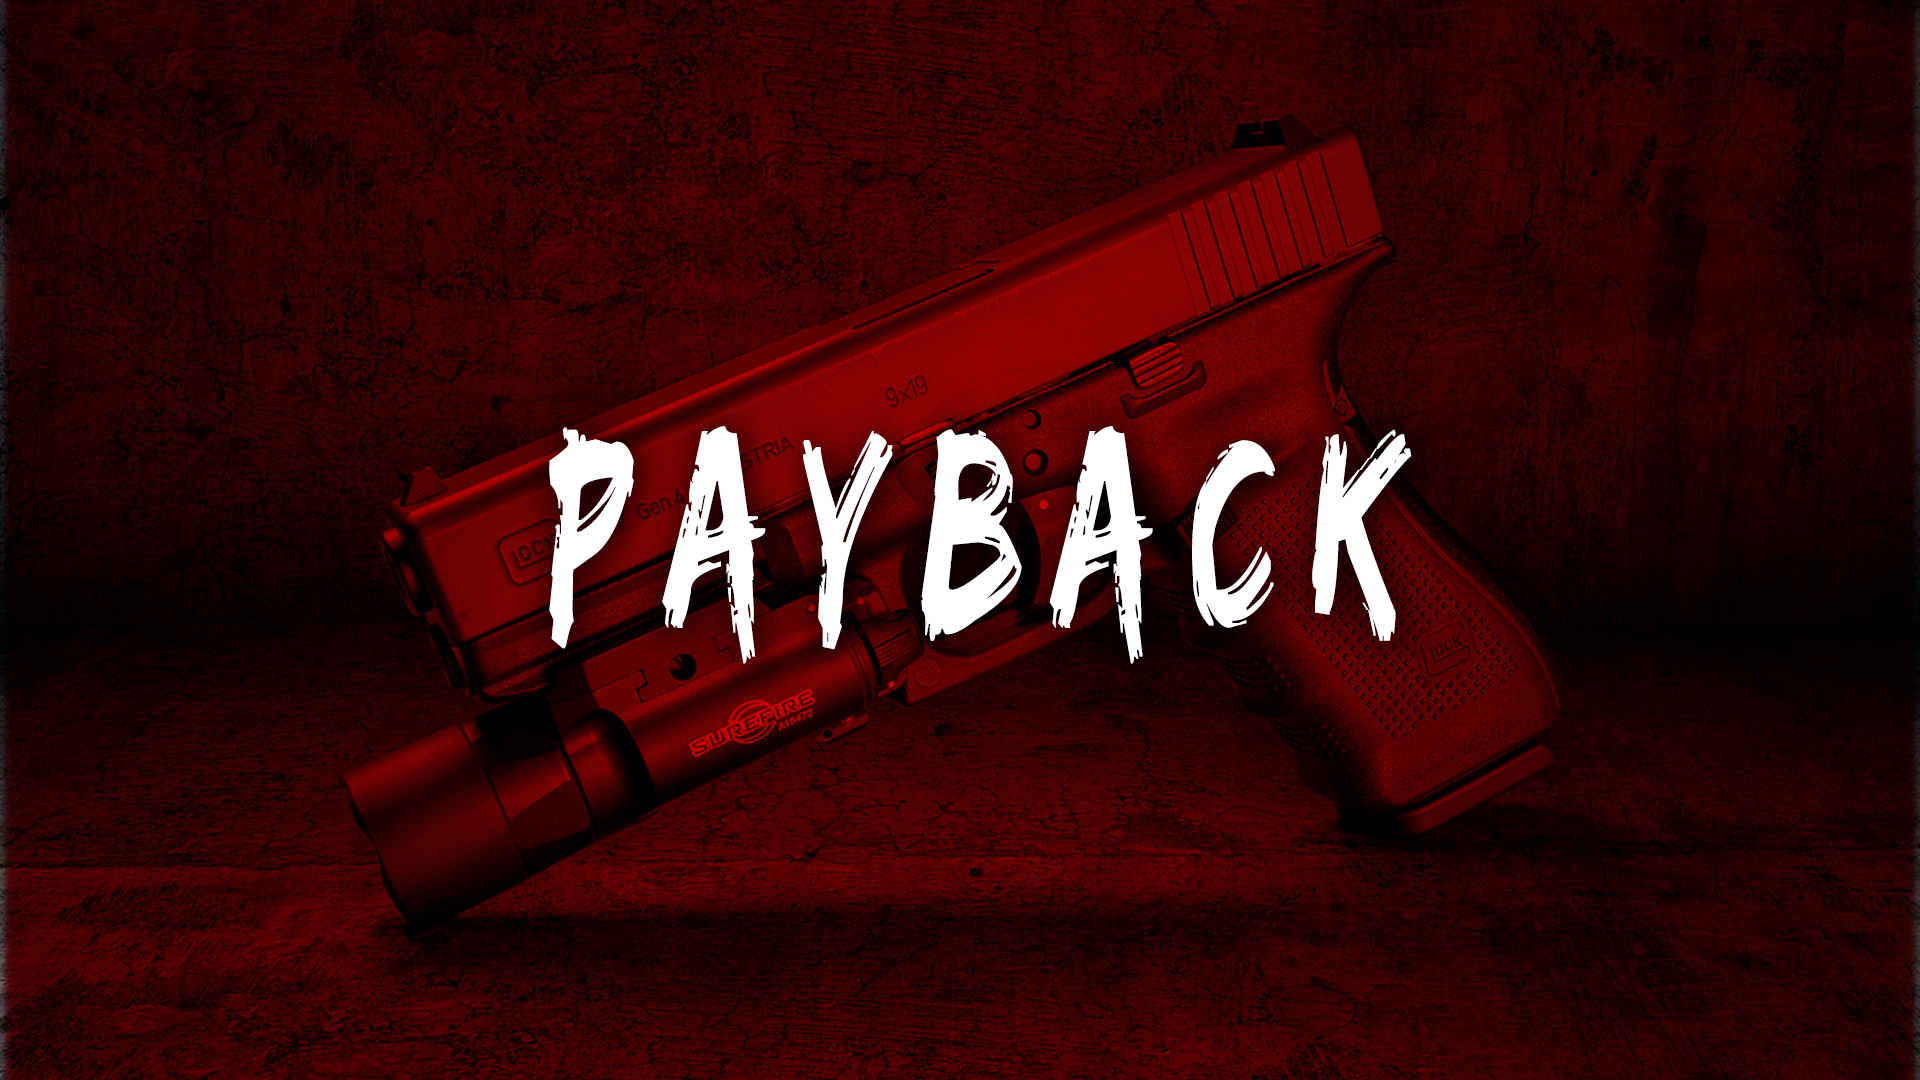 Payback ft. Silent